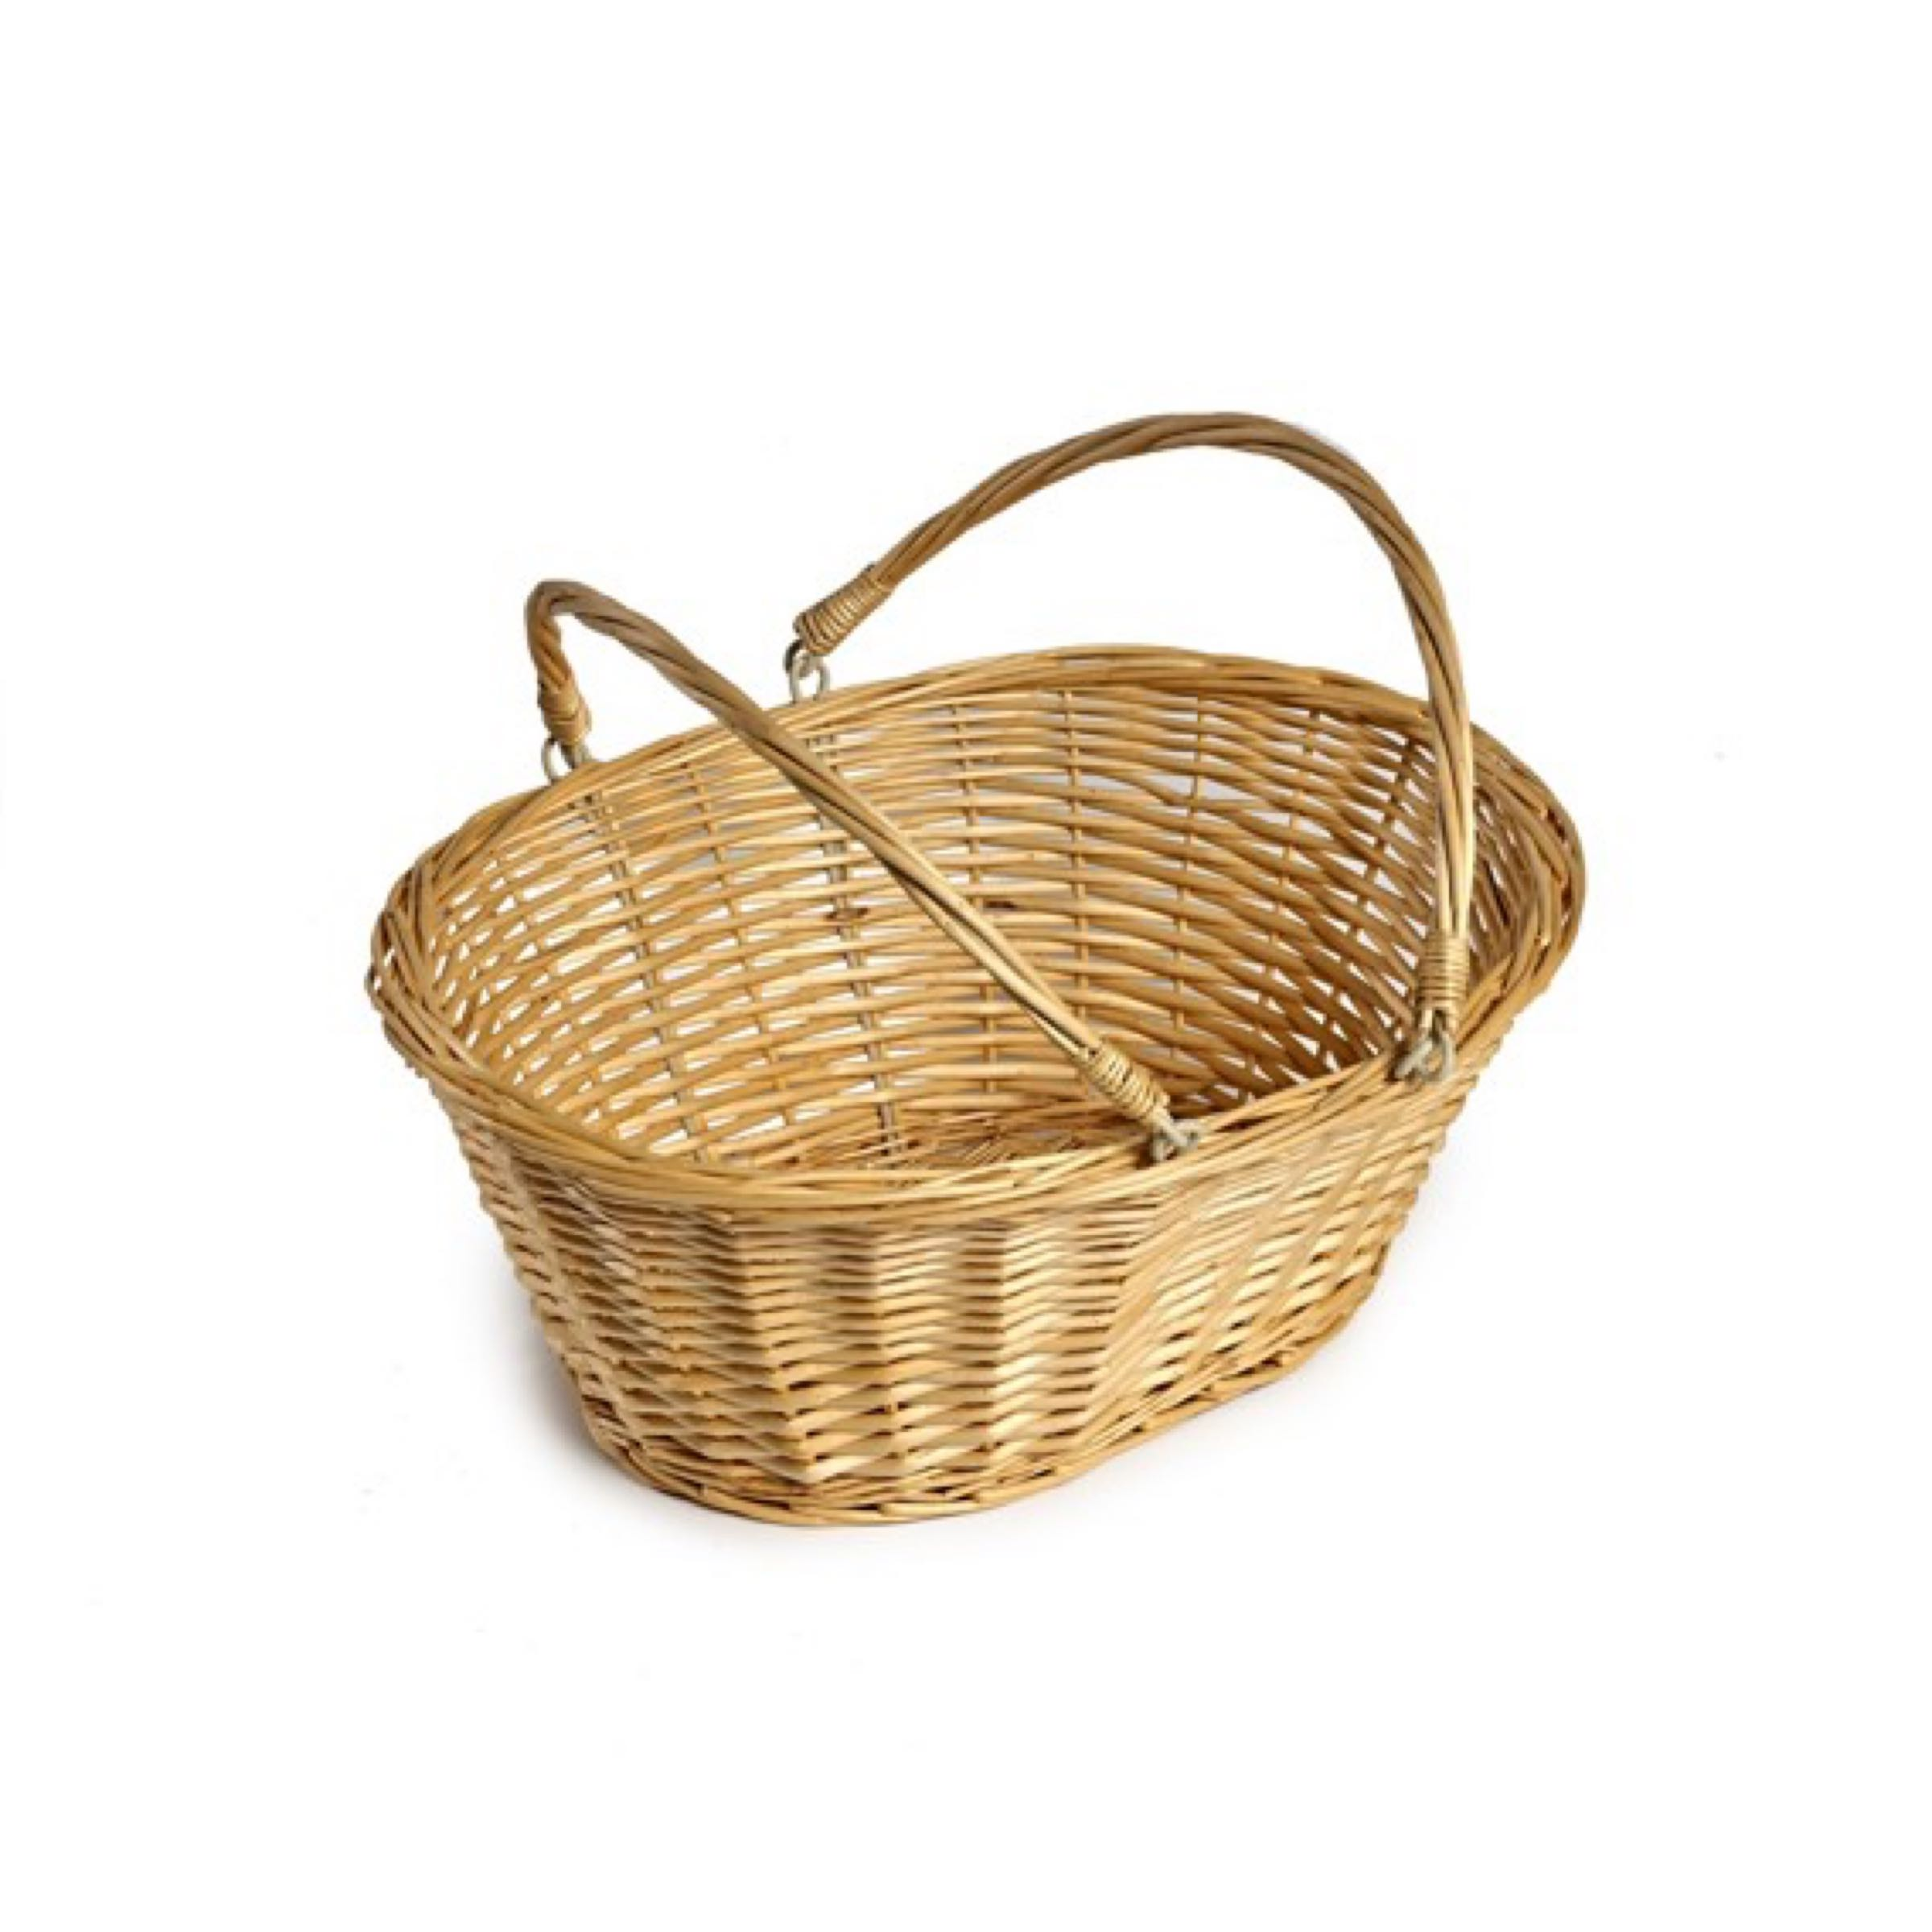 Large Wicker Basket - Select and build your own hamper!